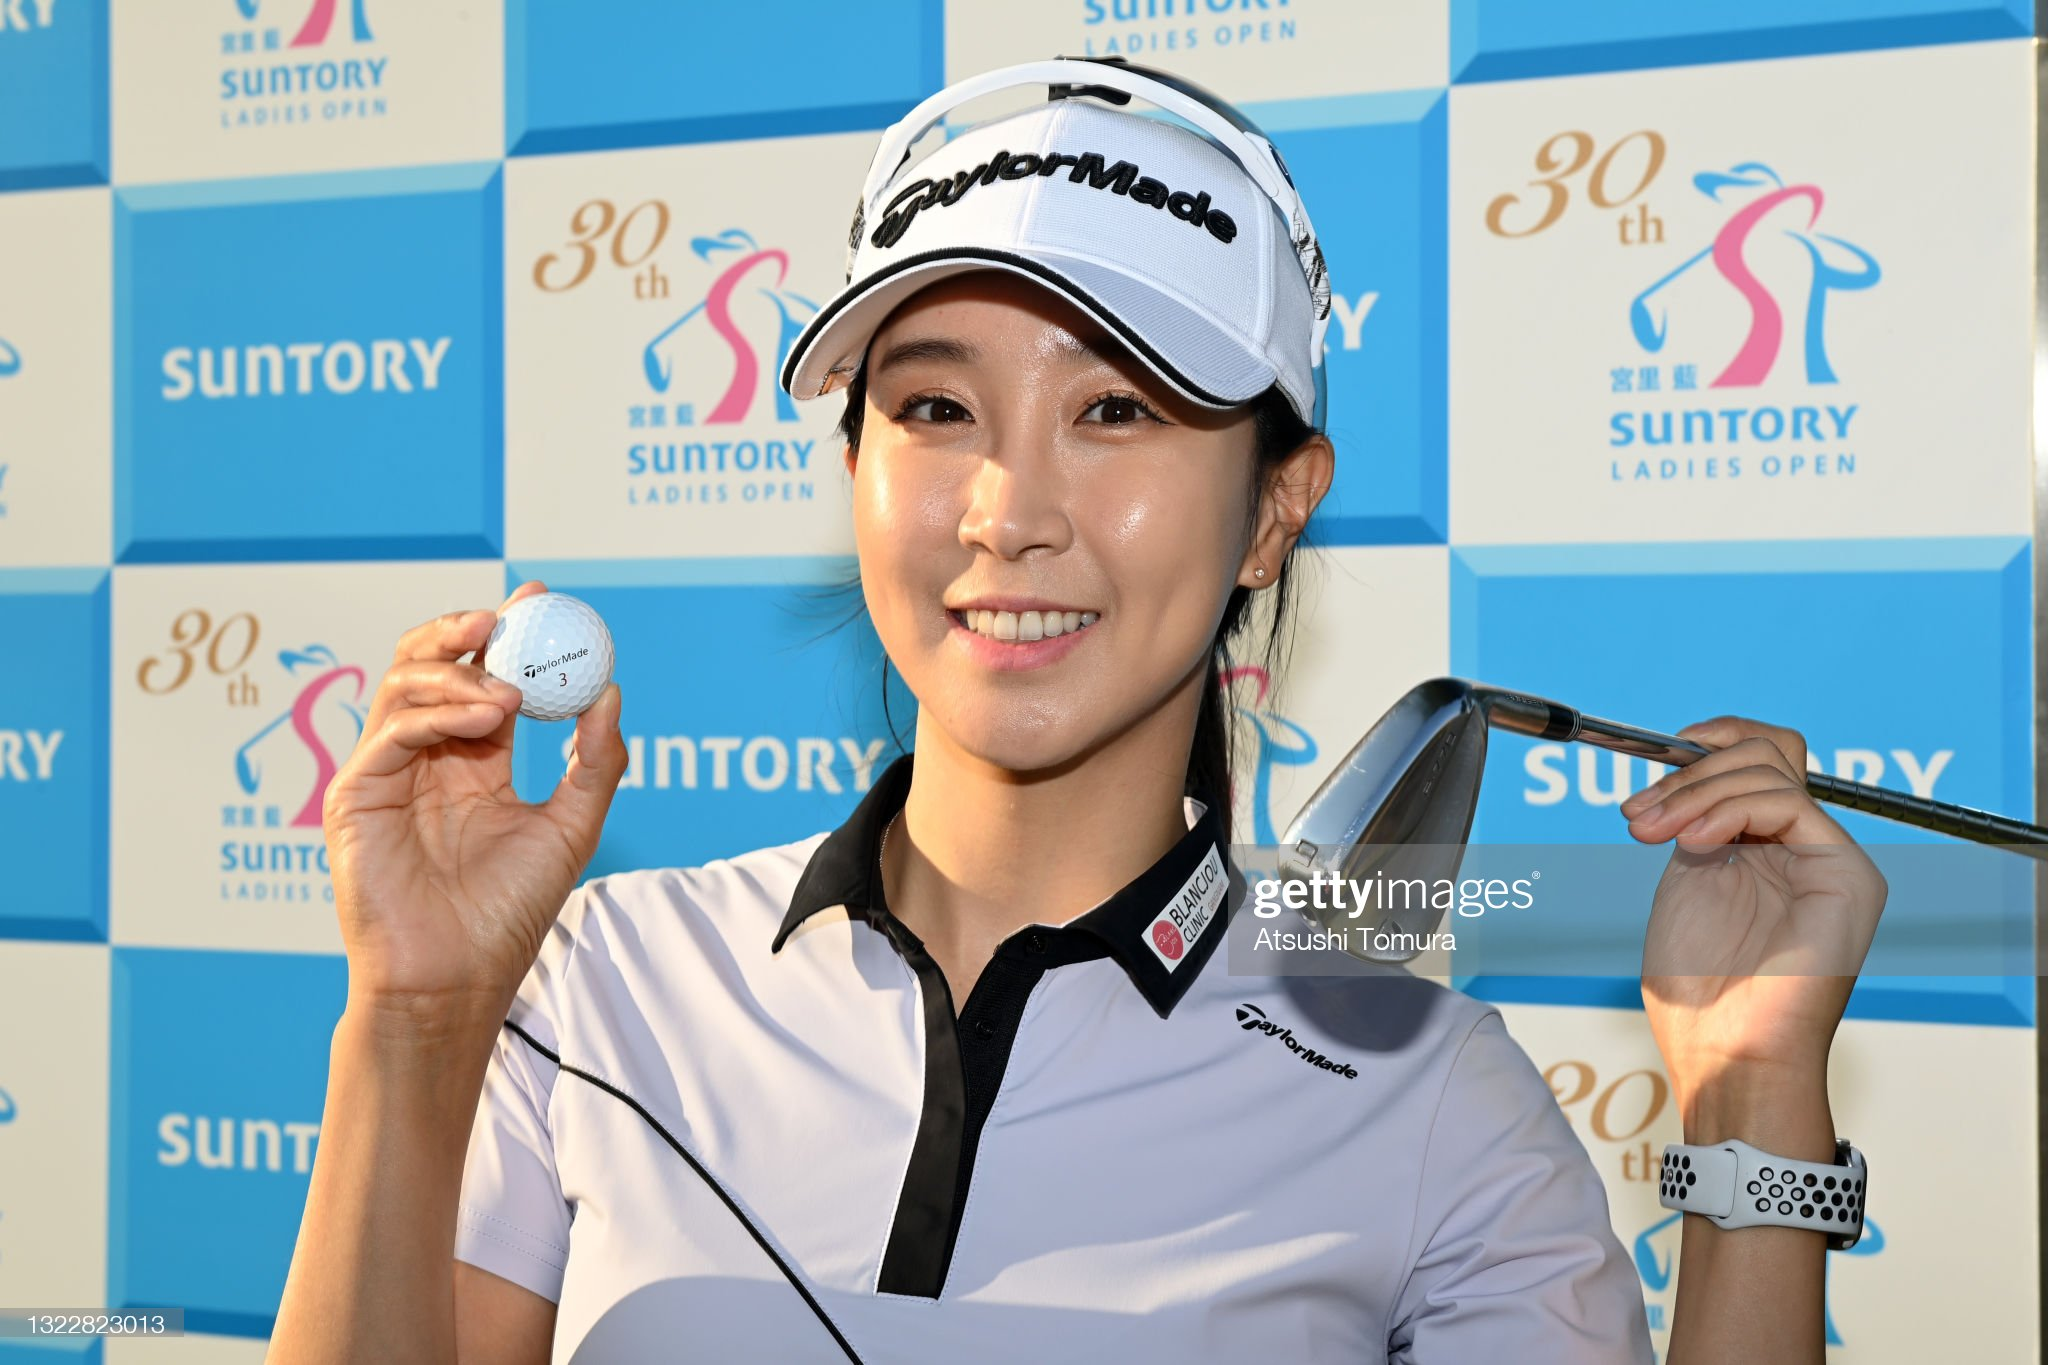 https://media.gettyimages.com/photos/jaeeun-chung-of-south-korea-poses-as-she-made-a-holeinone-at-the-6th-picture-id1322823013?s=2048x2048